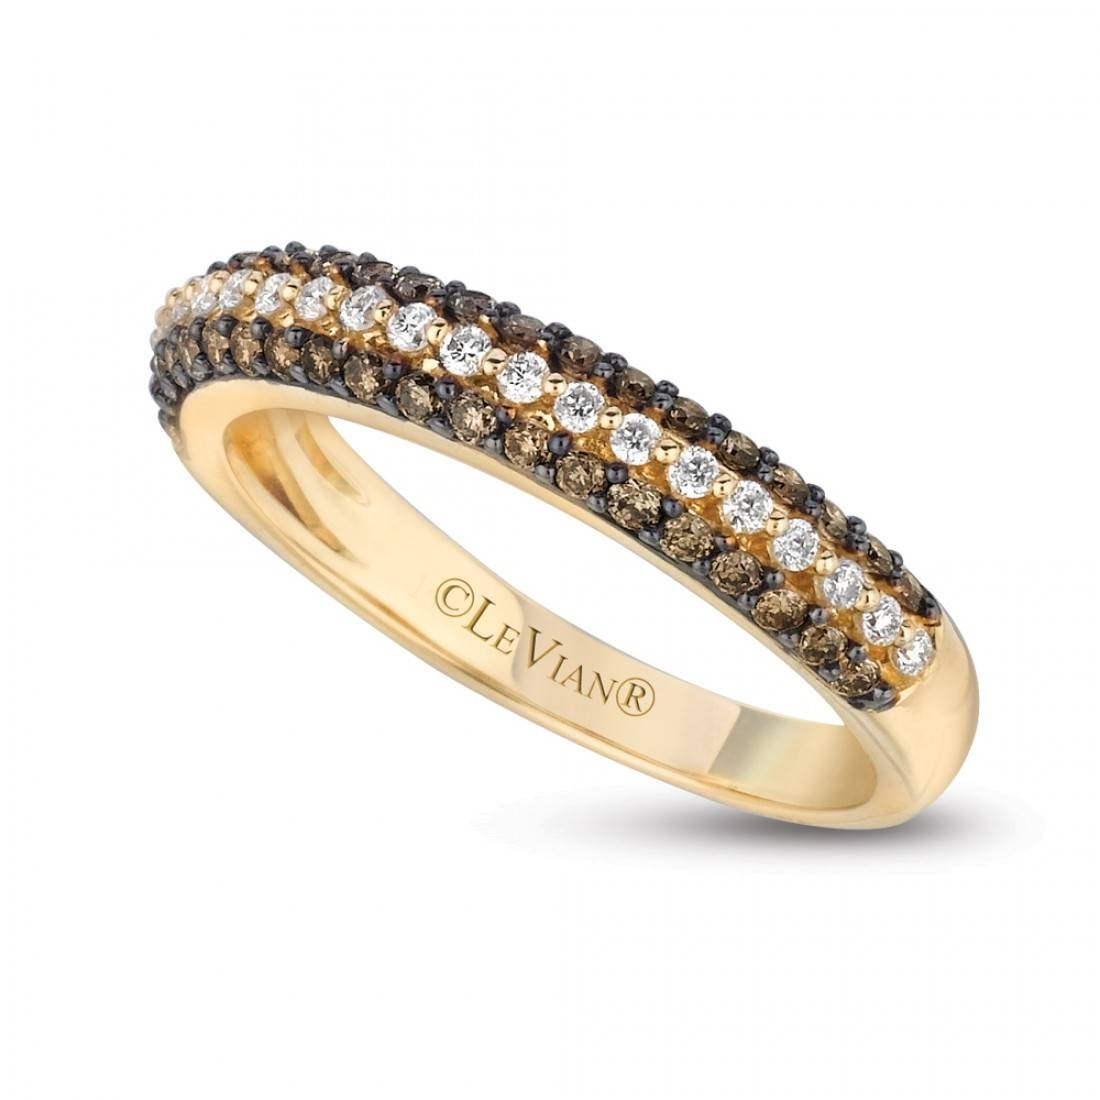 Le Vian 14K Yellow Gold Chocolate Pave Diamond Wedding Band With Regard To Chocolate Wedding Bands (View 14 of 15)